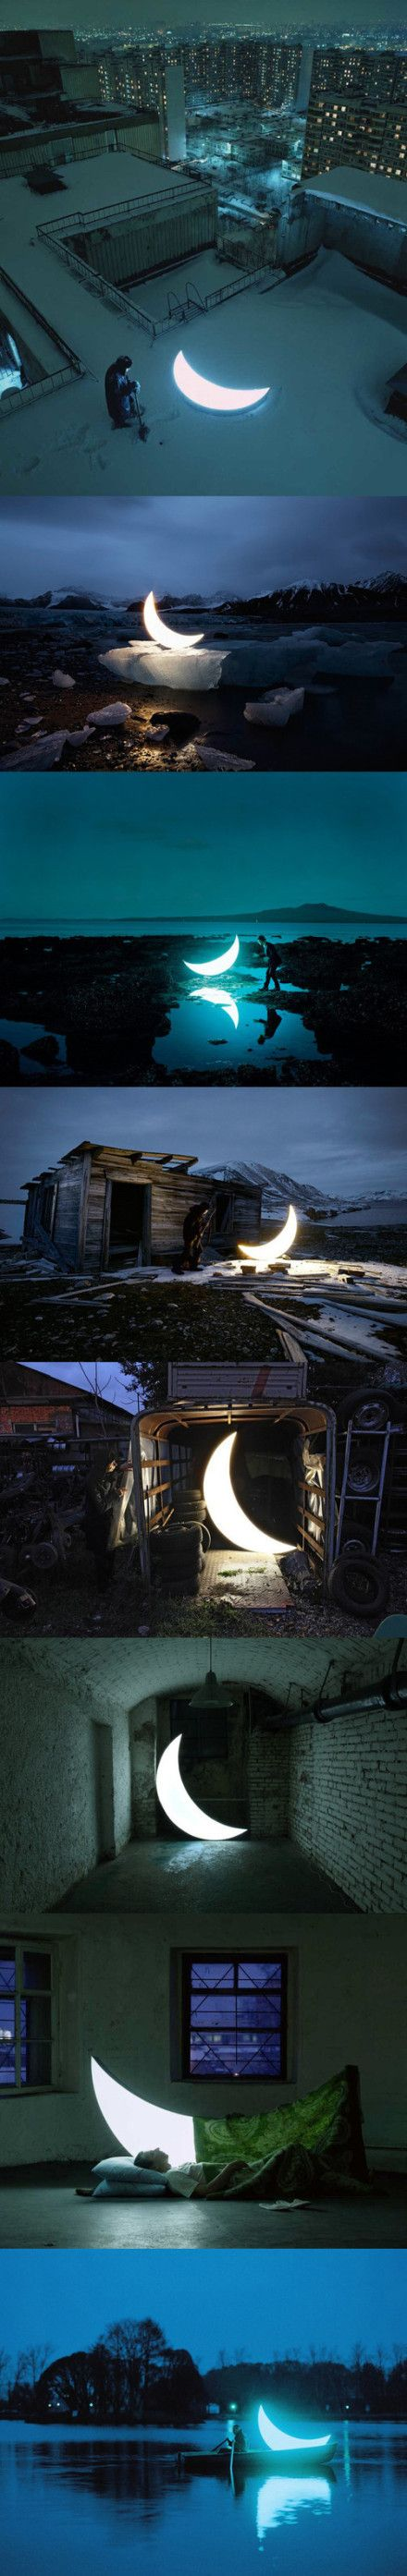 Leonid Tishkov travels the world with his own personal moon and photographs it on his travels.